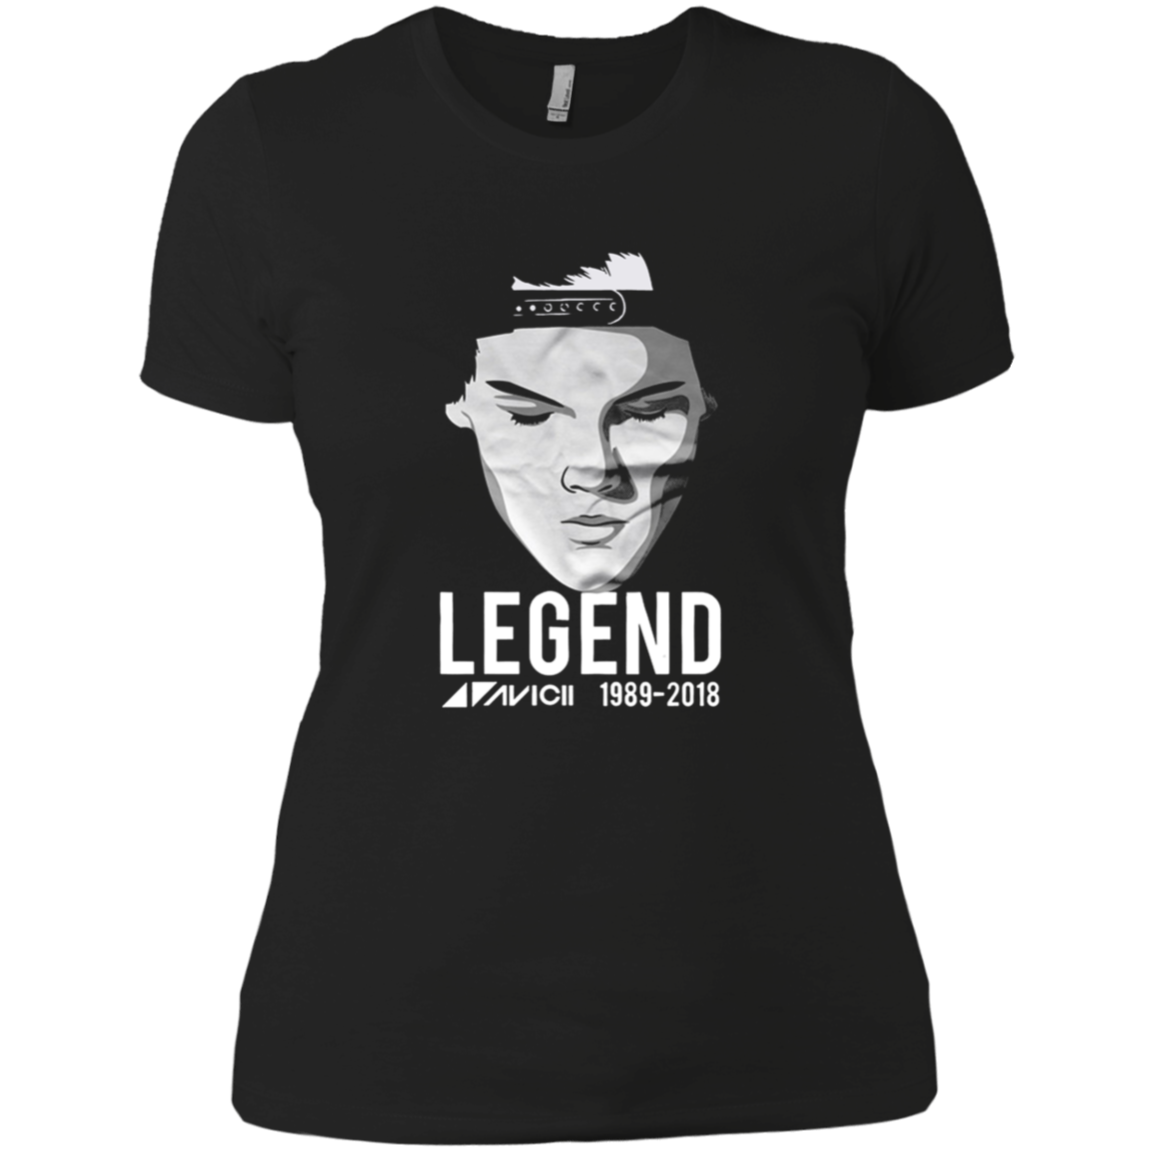 RIP AVICII Tim Bergling Death 1989-2018 Shirt Ladies